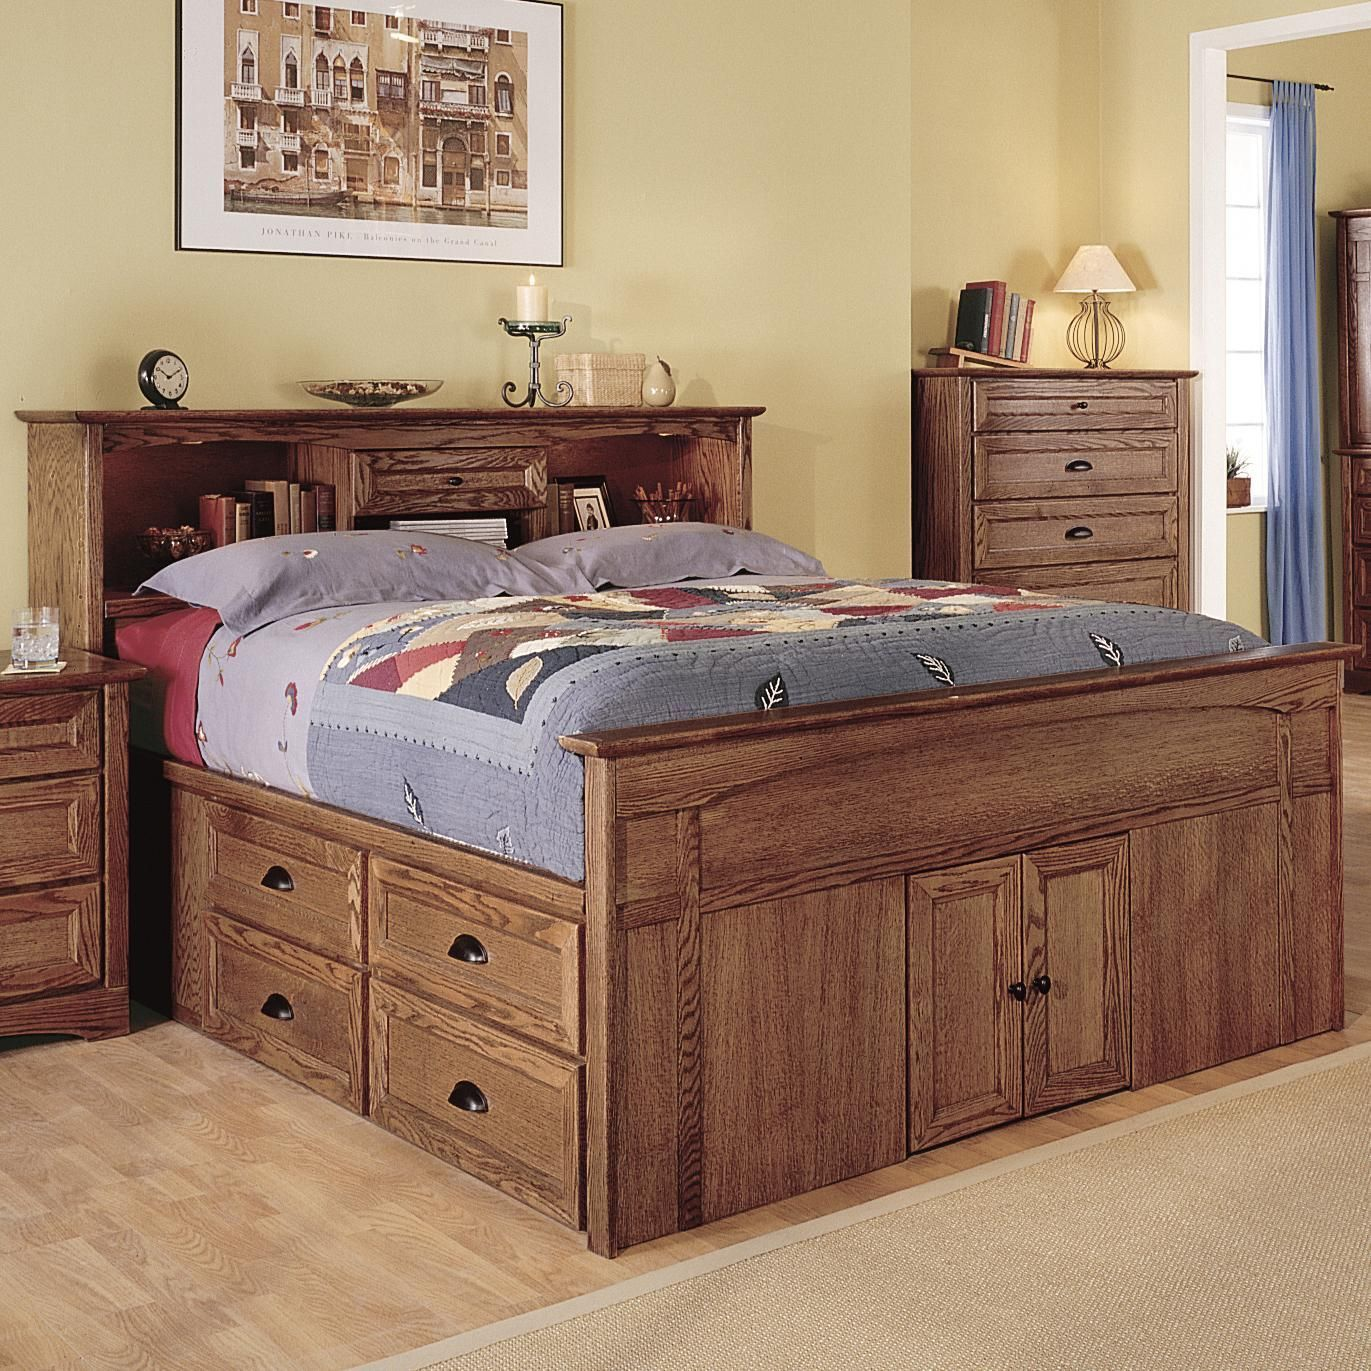 Diy Platform Queen Bed With Drawers In 2020 With Images Bed